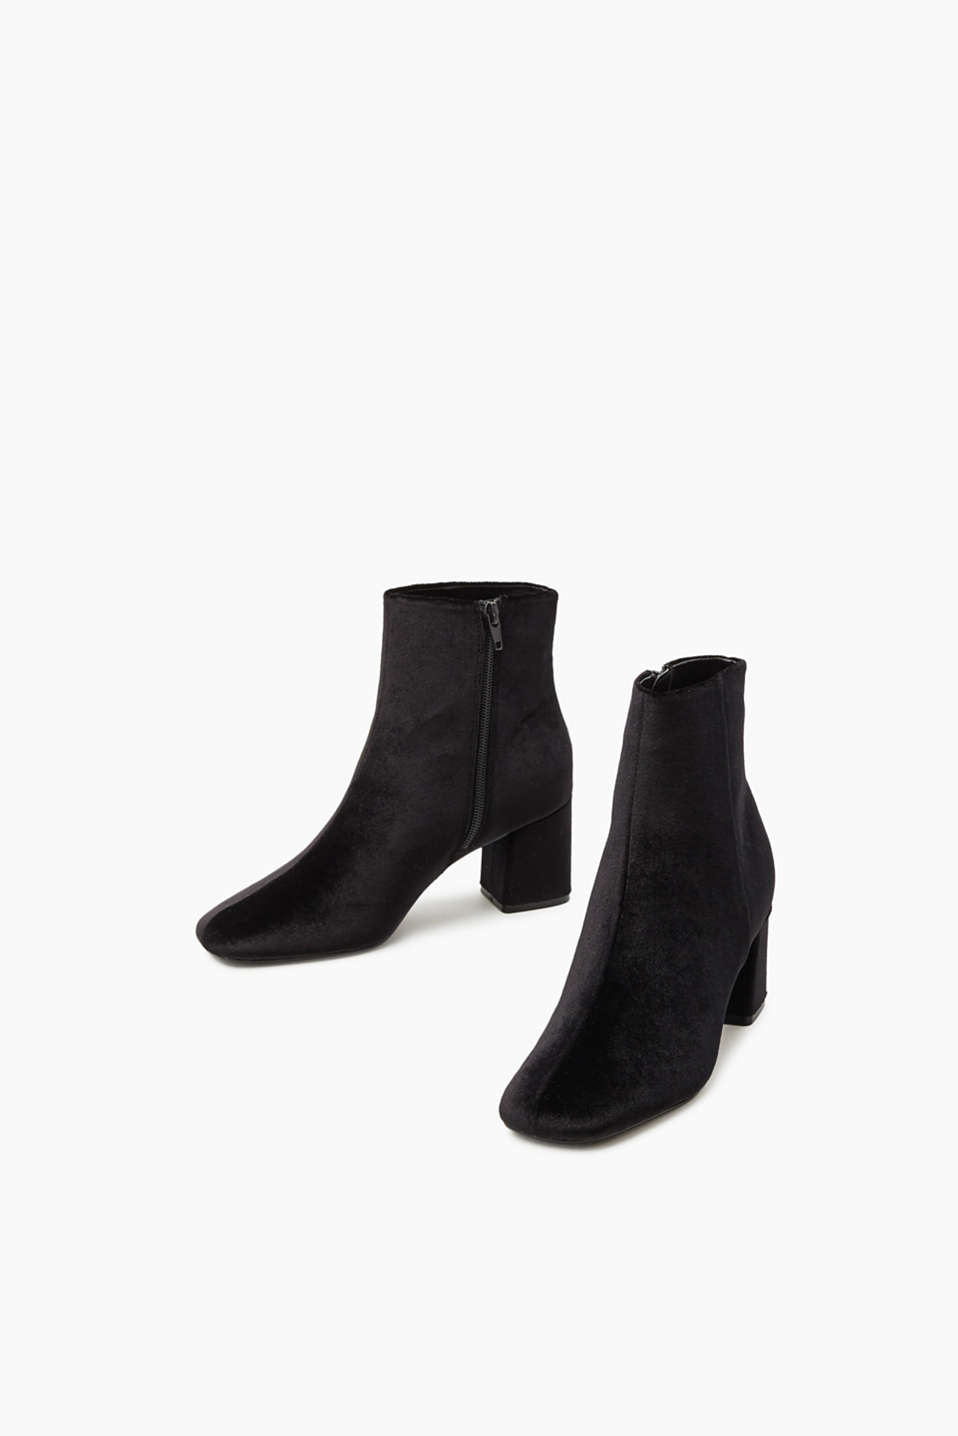 Bottines en doux velours de coton